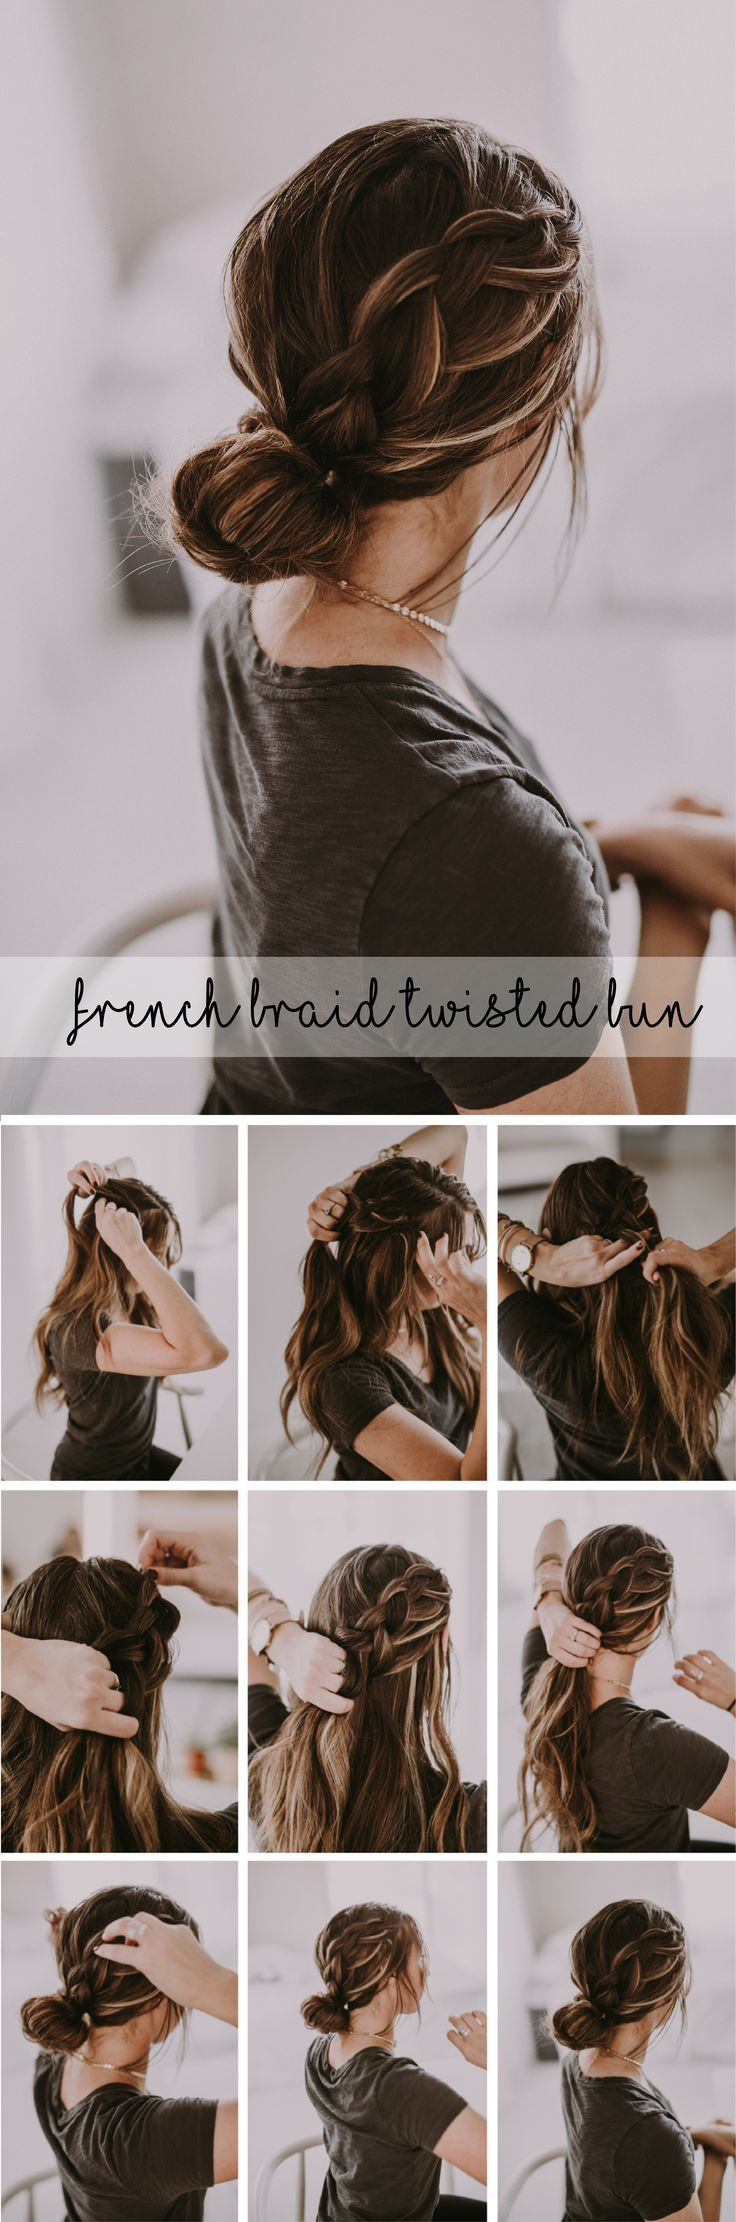 this beautiful hairstyle is perfect for holiday parties, events, or with your fa...